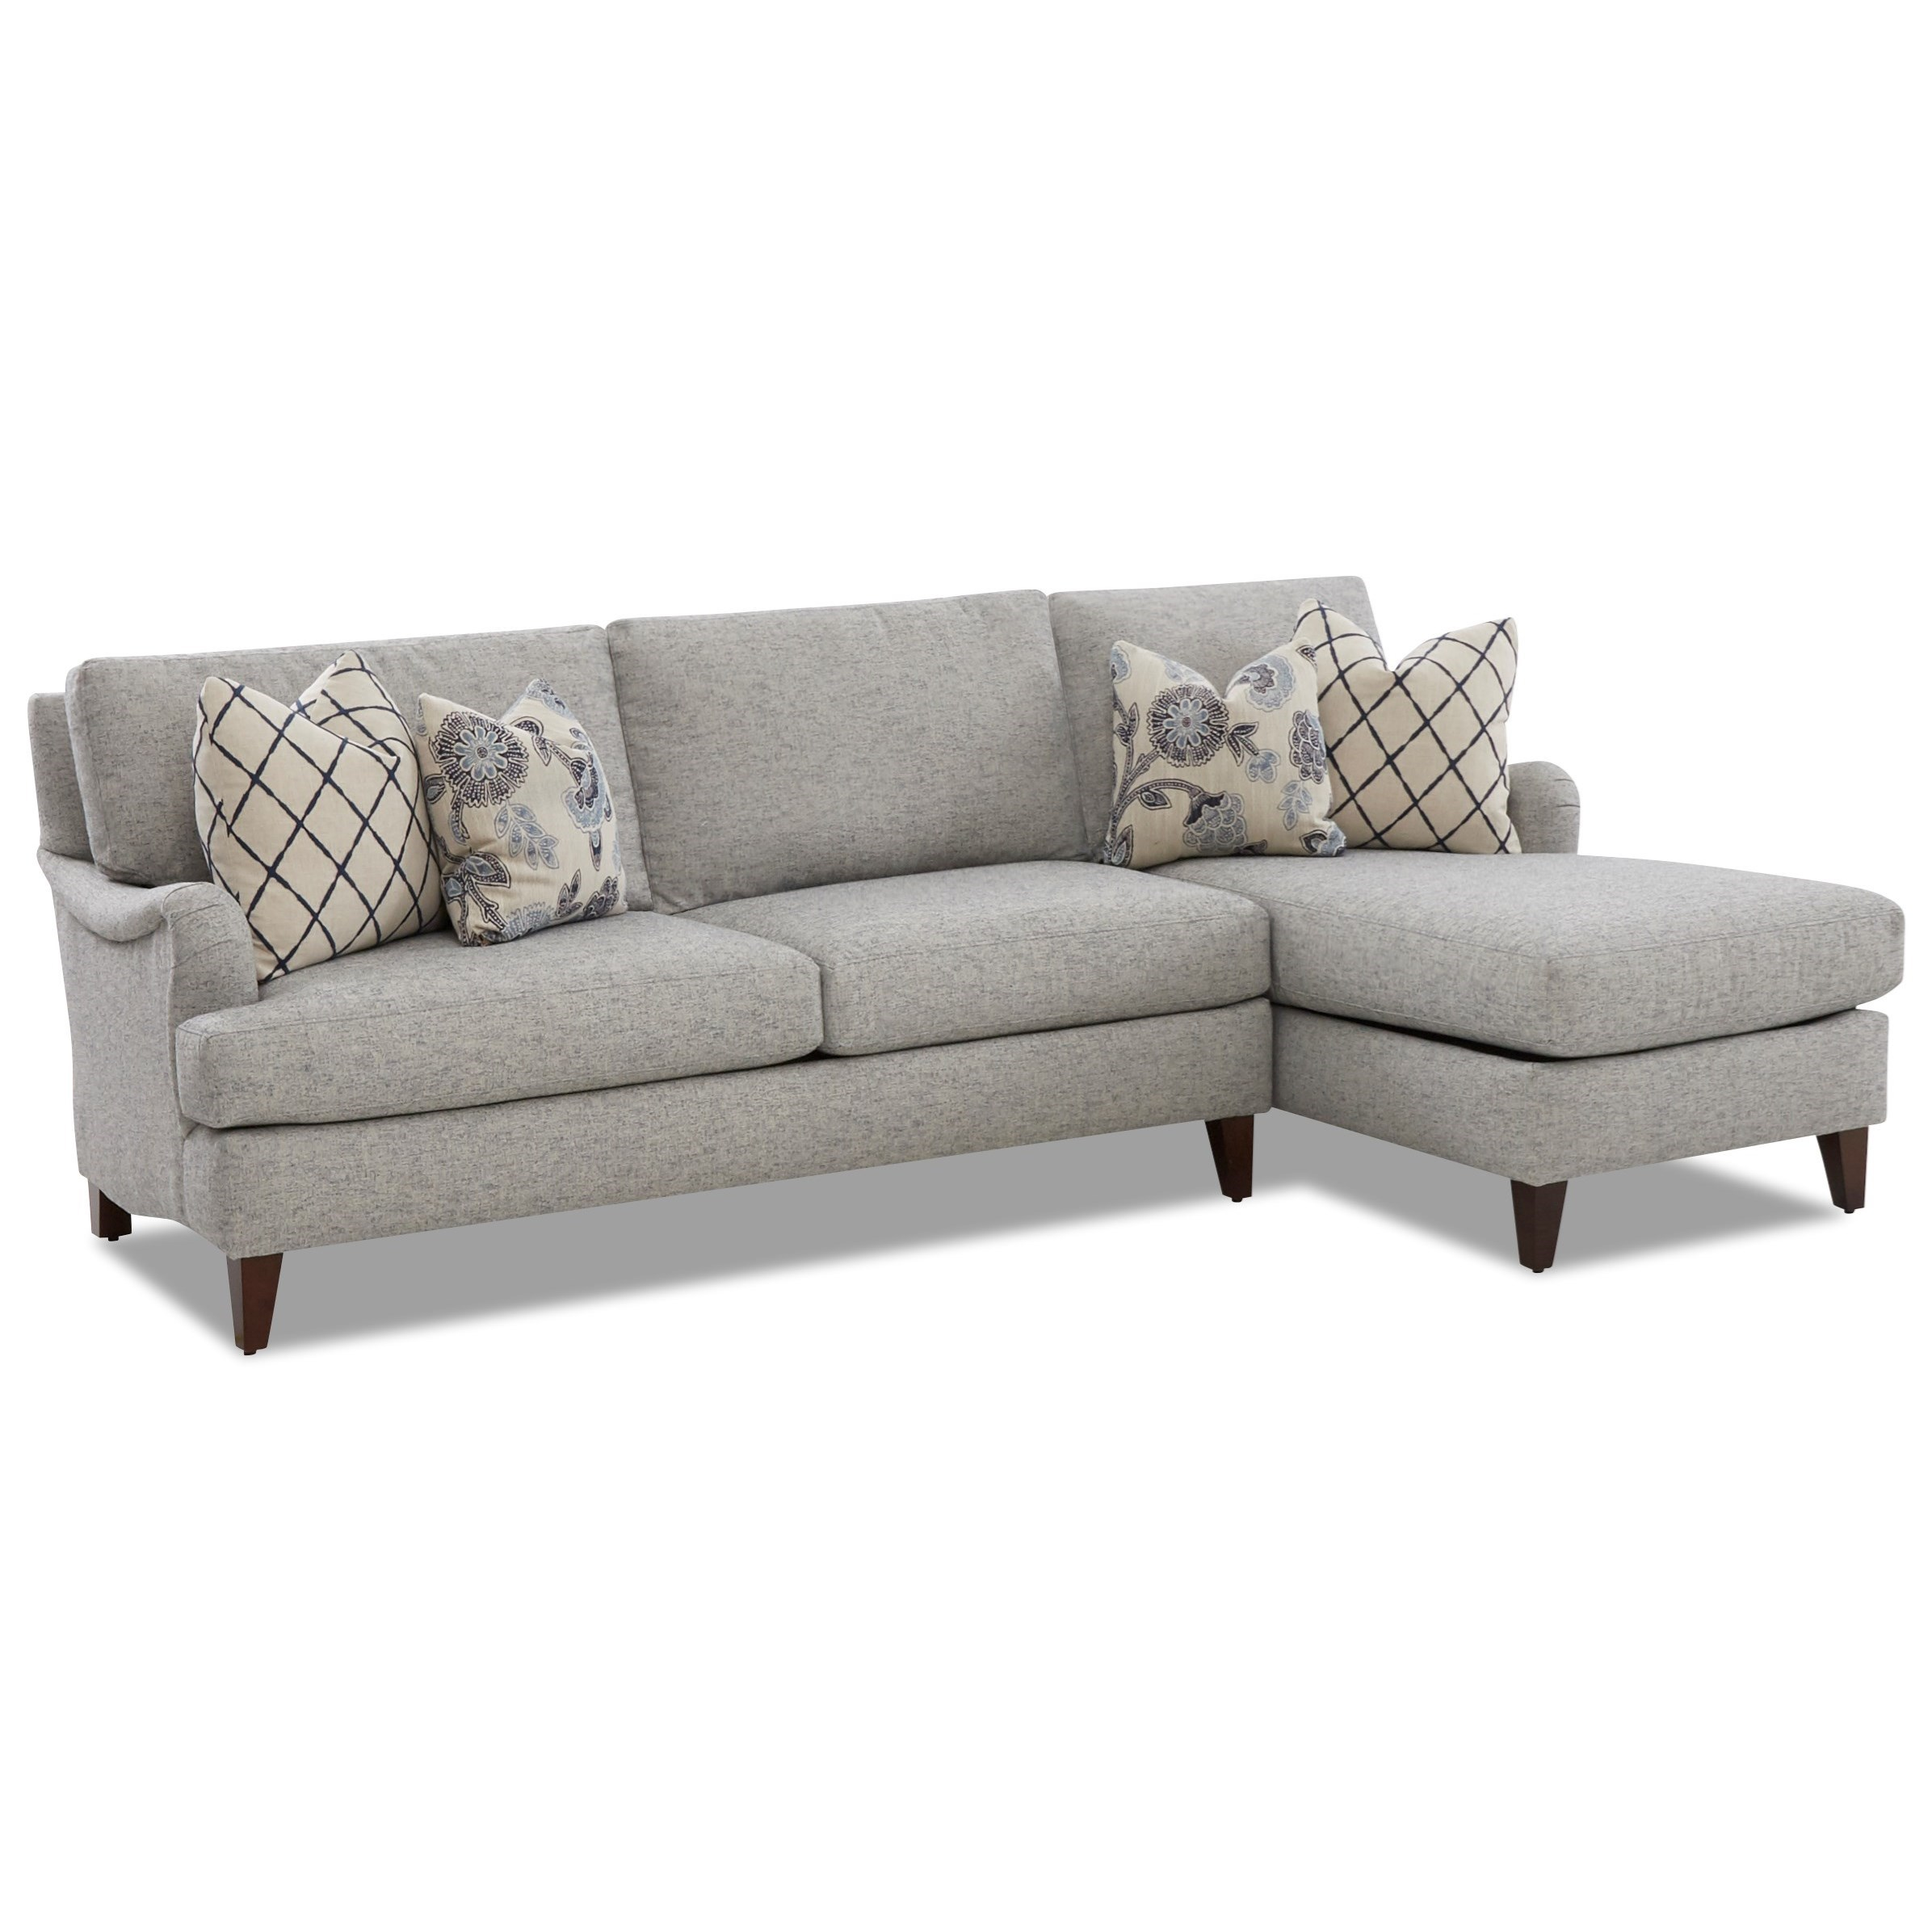 Alden Sofa Chaise by Klaussner at Van Hill Furniture